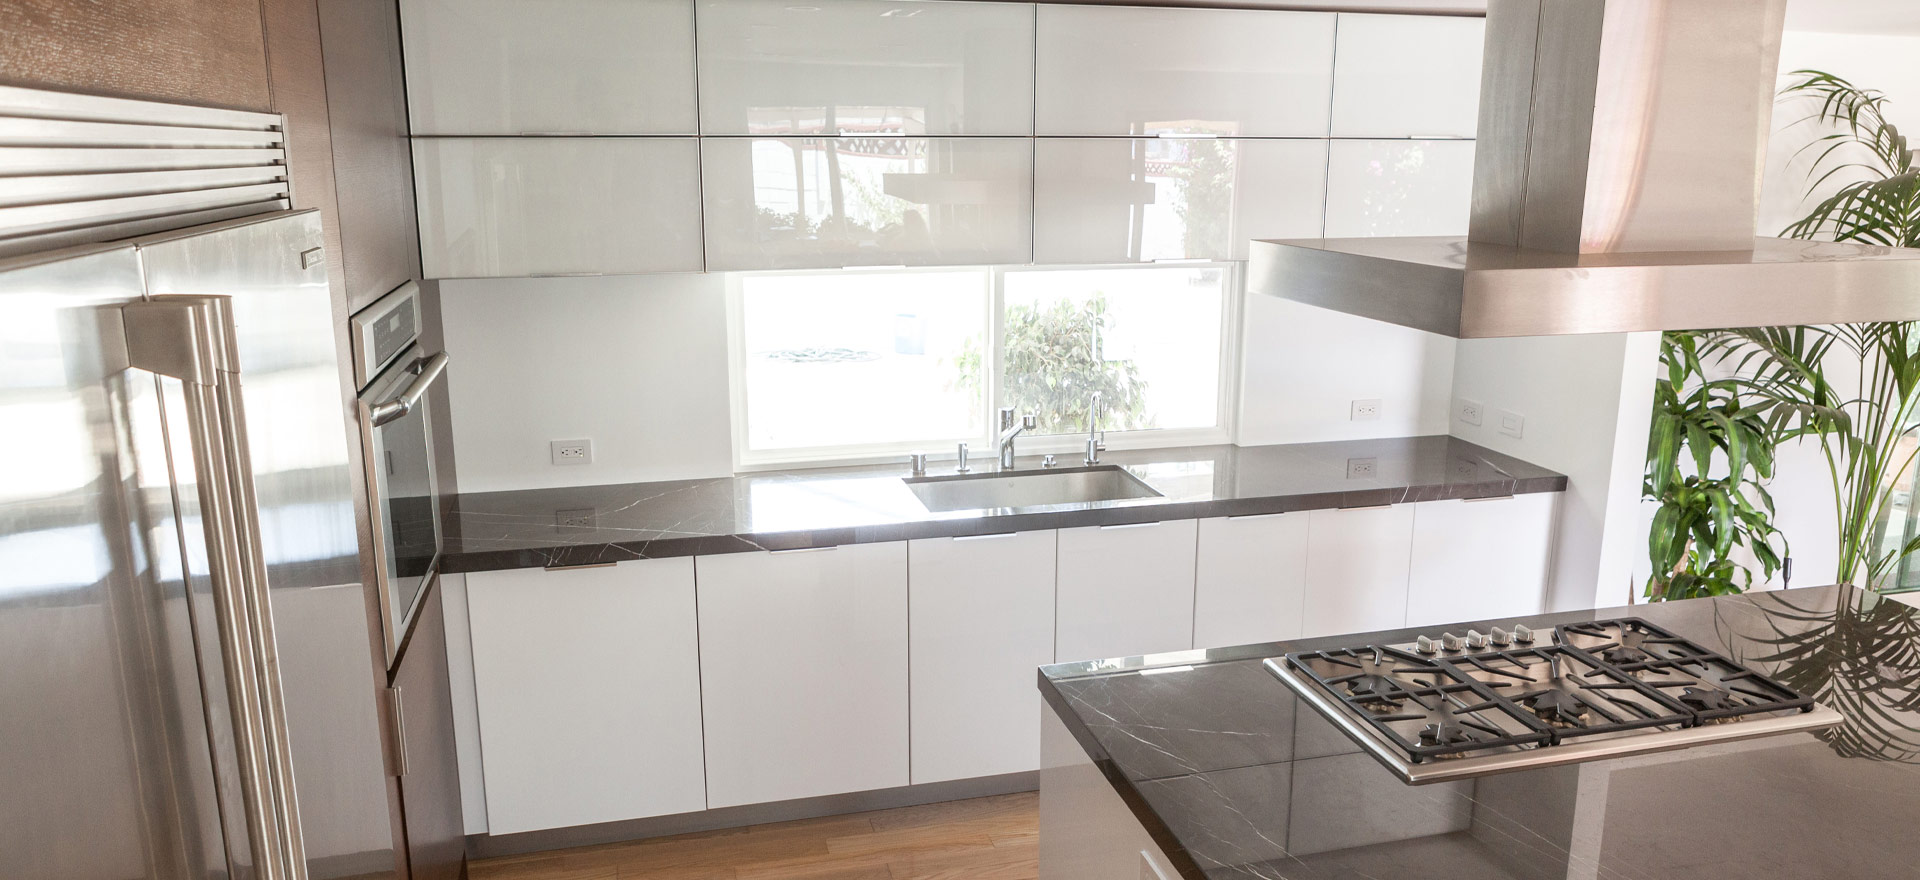 Kitchen Remodeling Beverly Hills Beverly Hills Ca General Contractor  Luxus Construction